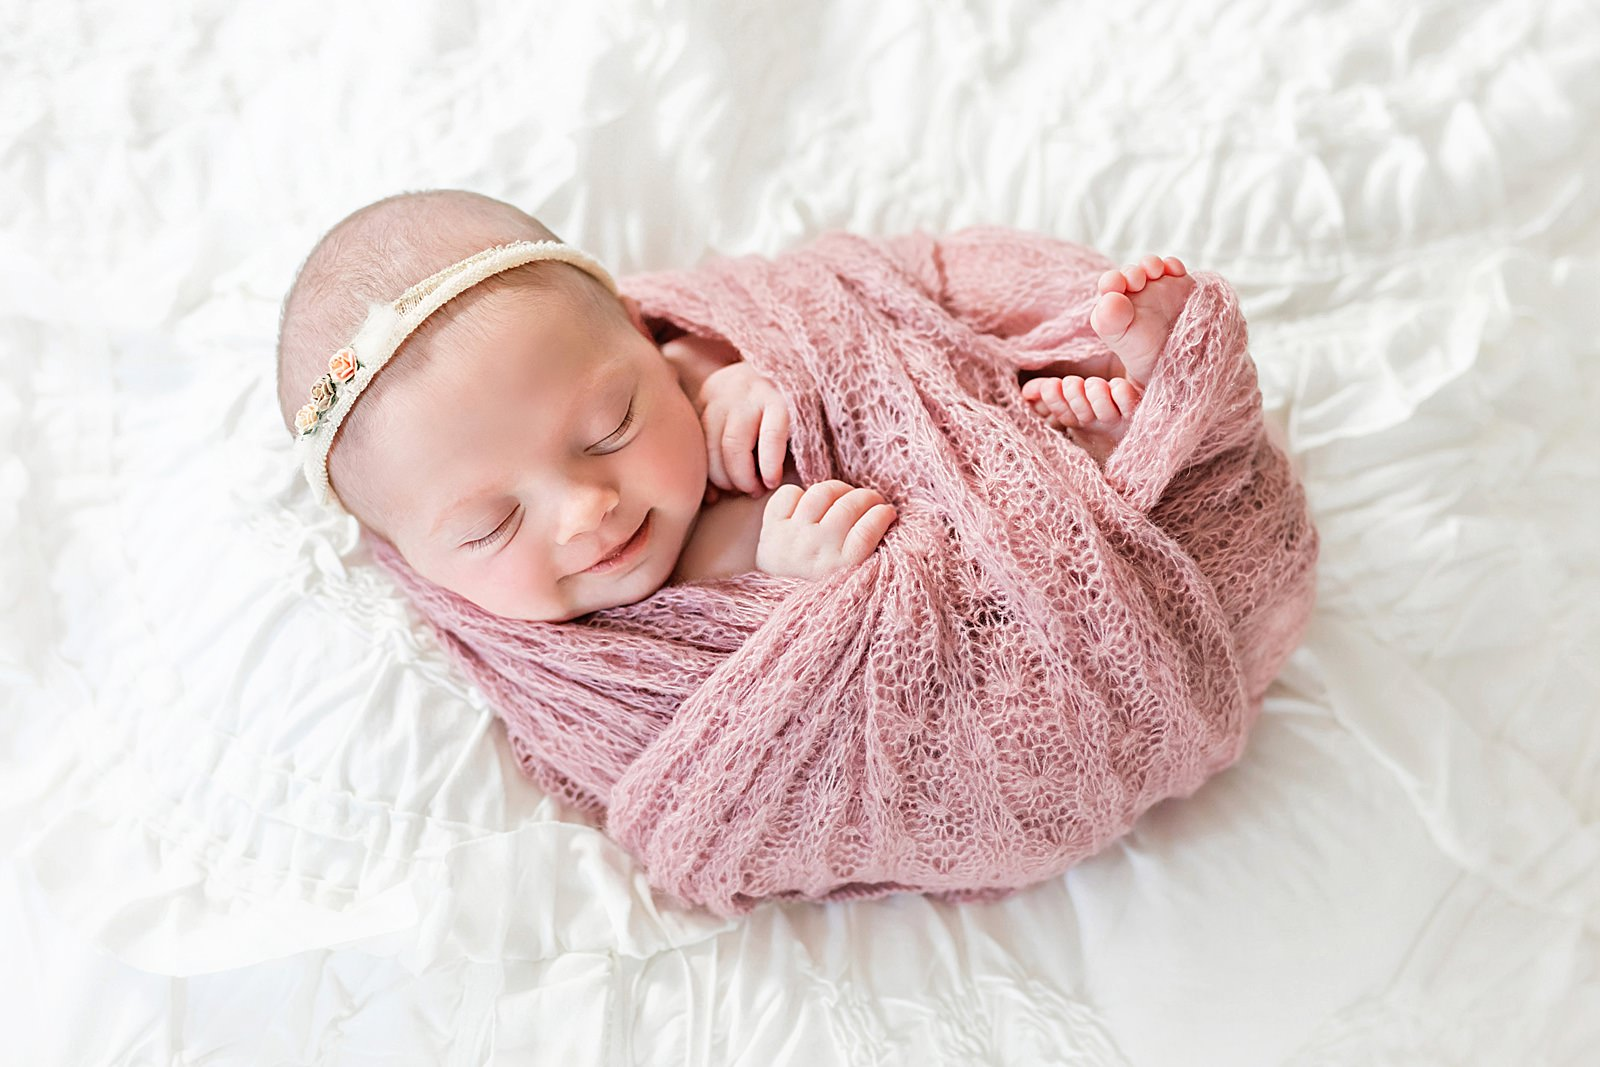 smiling newborn baby photo